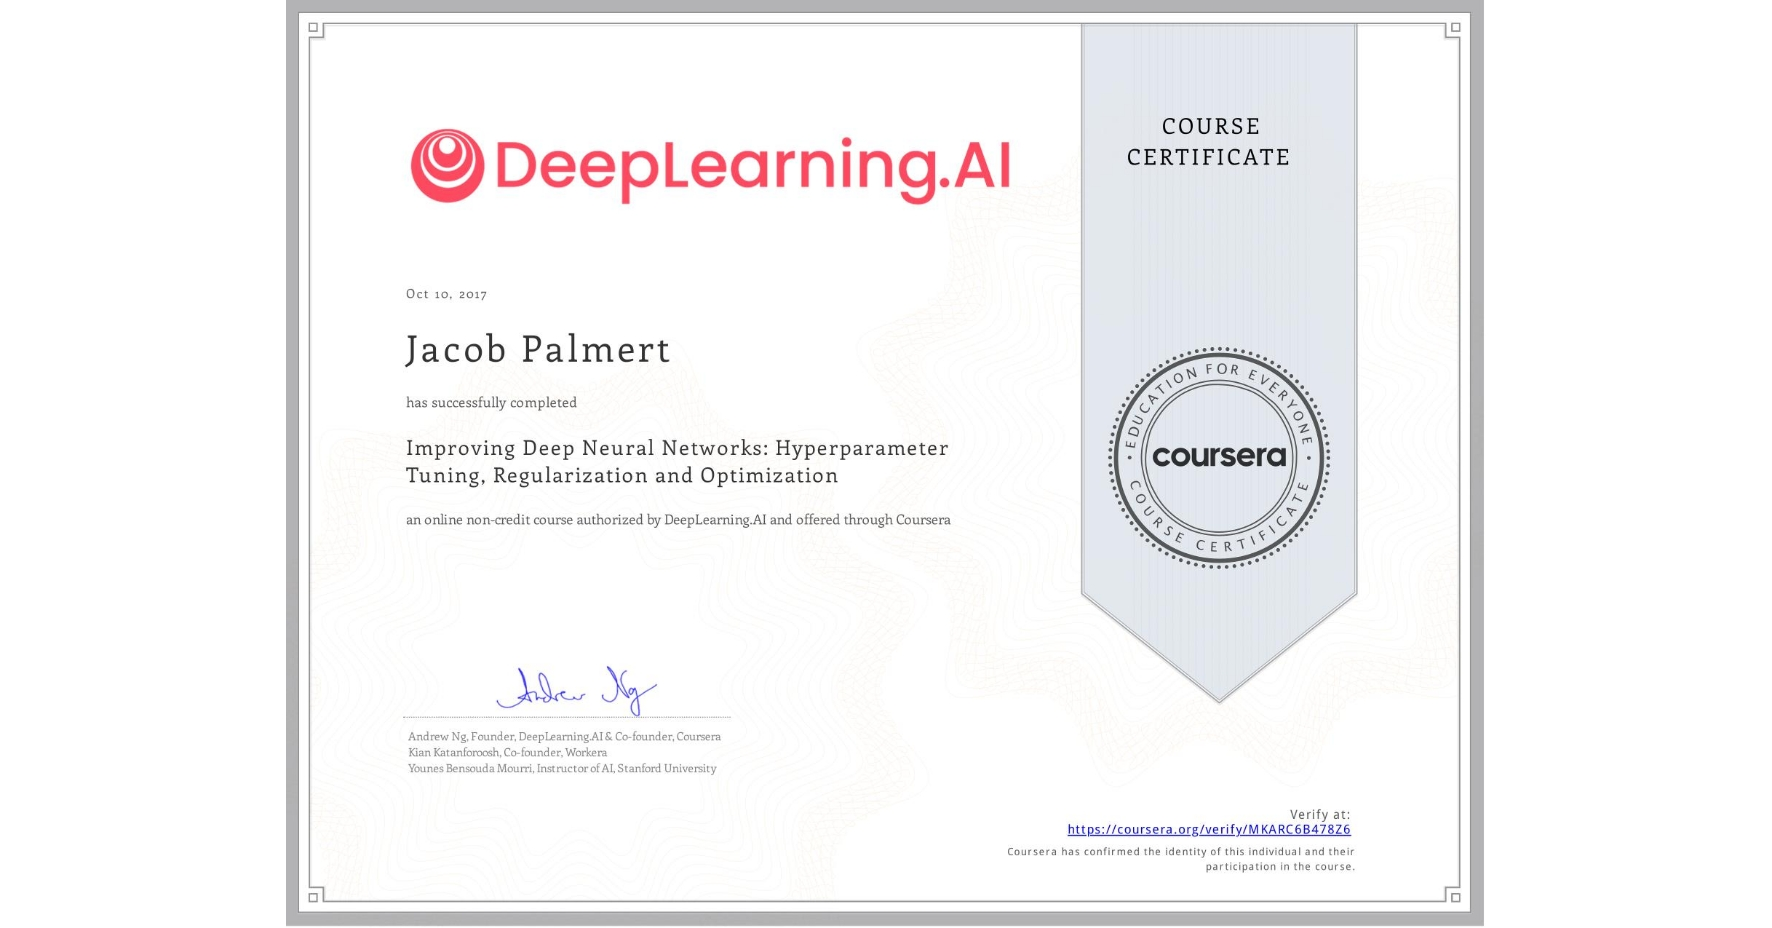 View certificate for Jacob Palmert, Improving Deep Neural Networks: Hyperparameter Tuning, Regularization and Optimization, an online non-credit course authorized by DeepLearning.AI and offered through Coursera